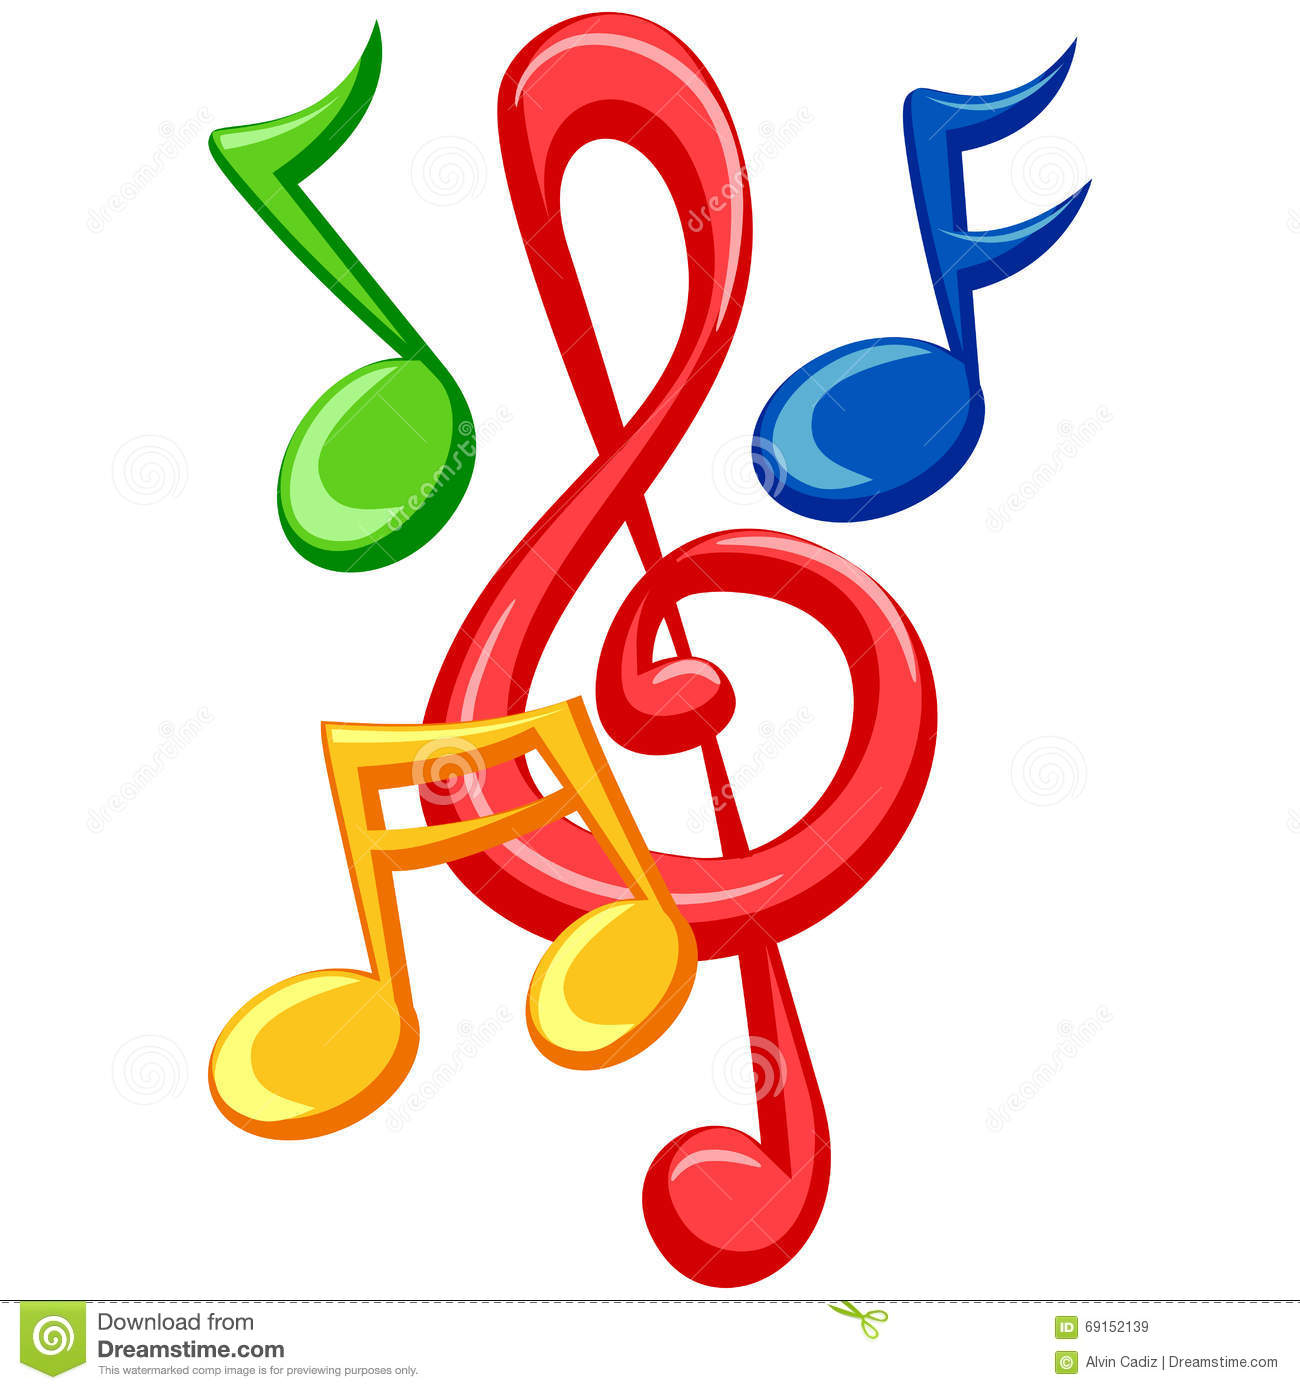 Colorful Music Notes stock vector. Illustration of stylized.